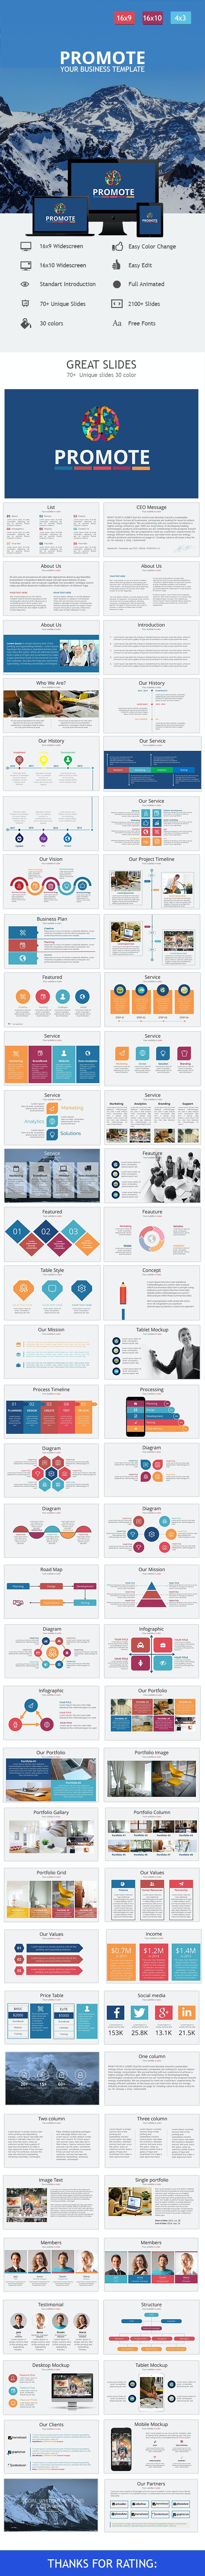 Promote - Clean Introduction Powerpoint Template  - Business PowerPoint Templates